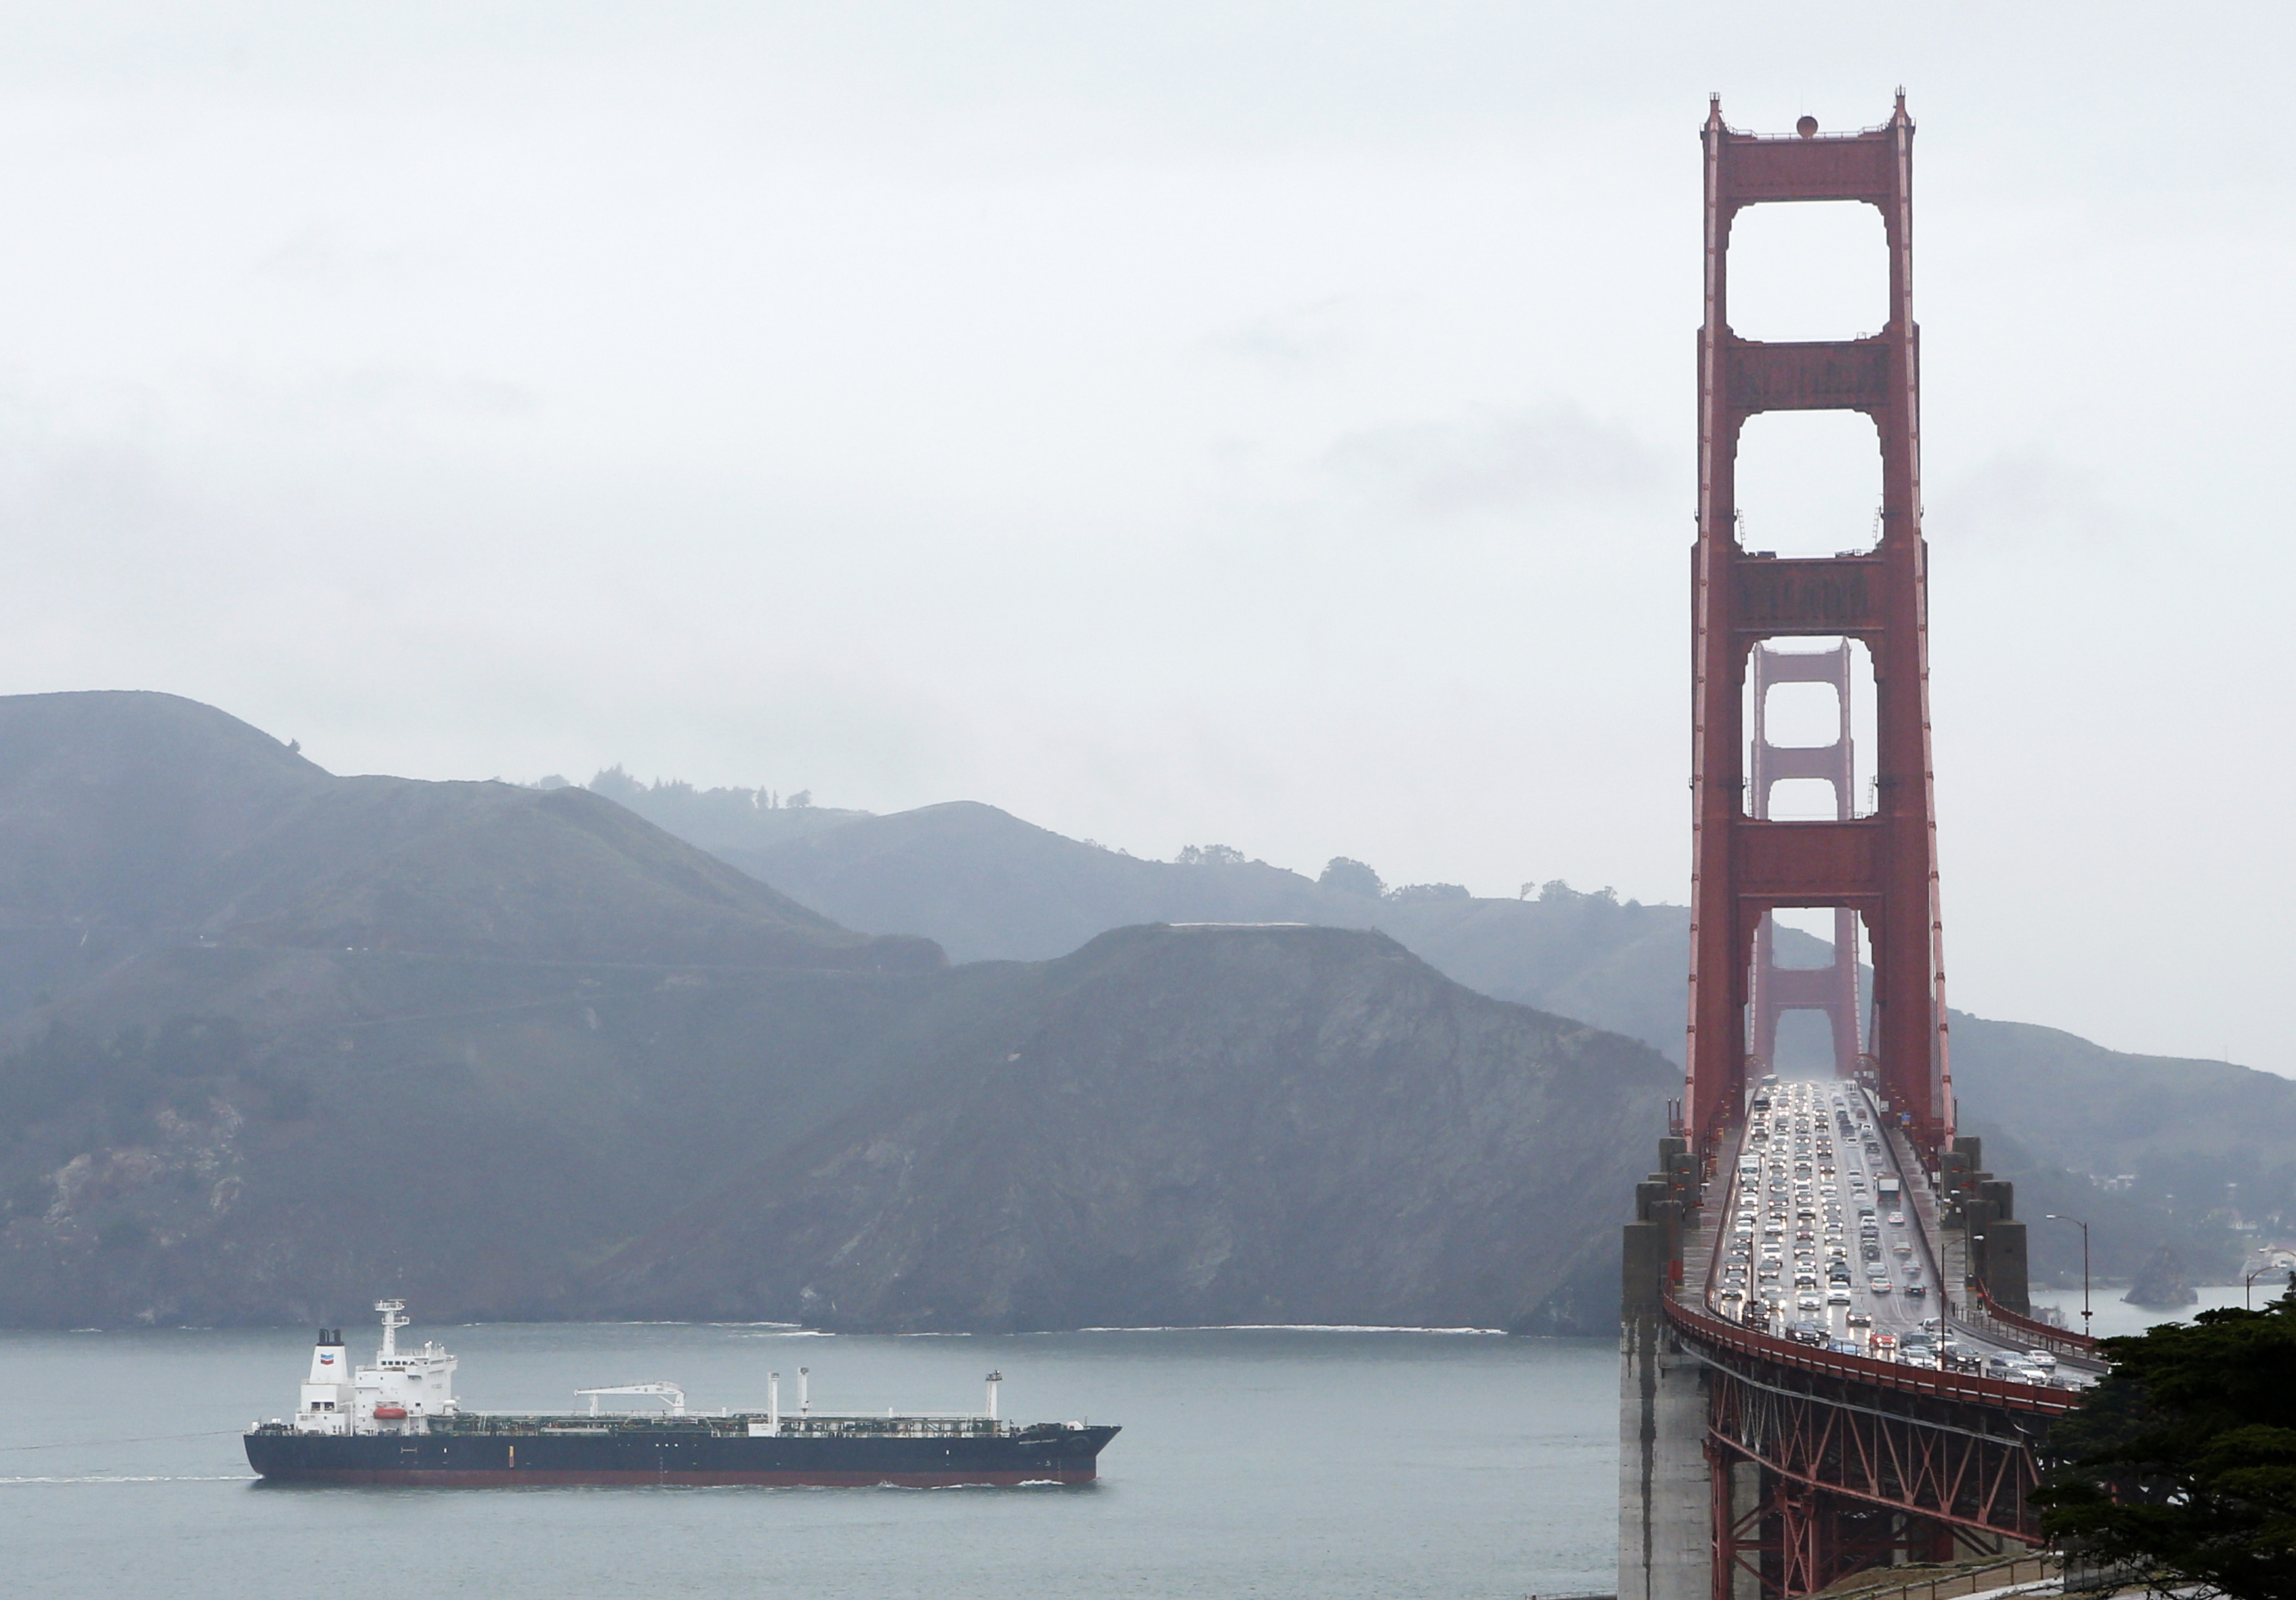 An oil tanker passes underneath the Golden Gate Bridge during a rainfall in San Francisco, California, February 26, 2014. REUTERS/Beck Diefenbach